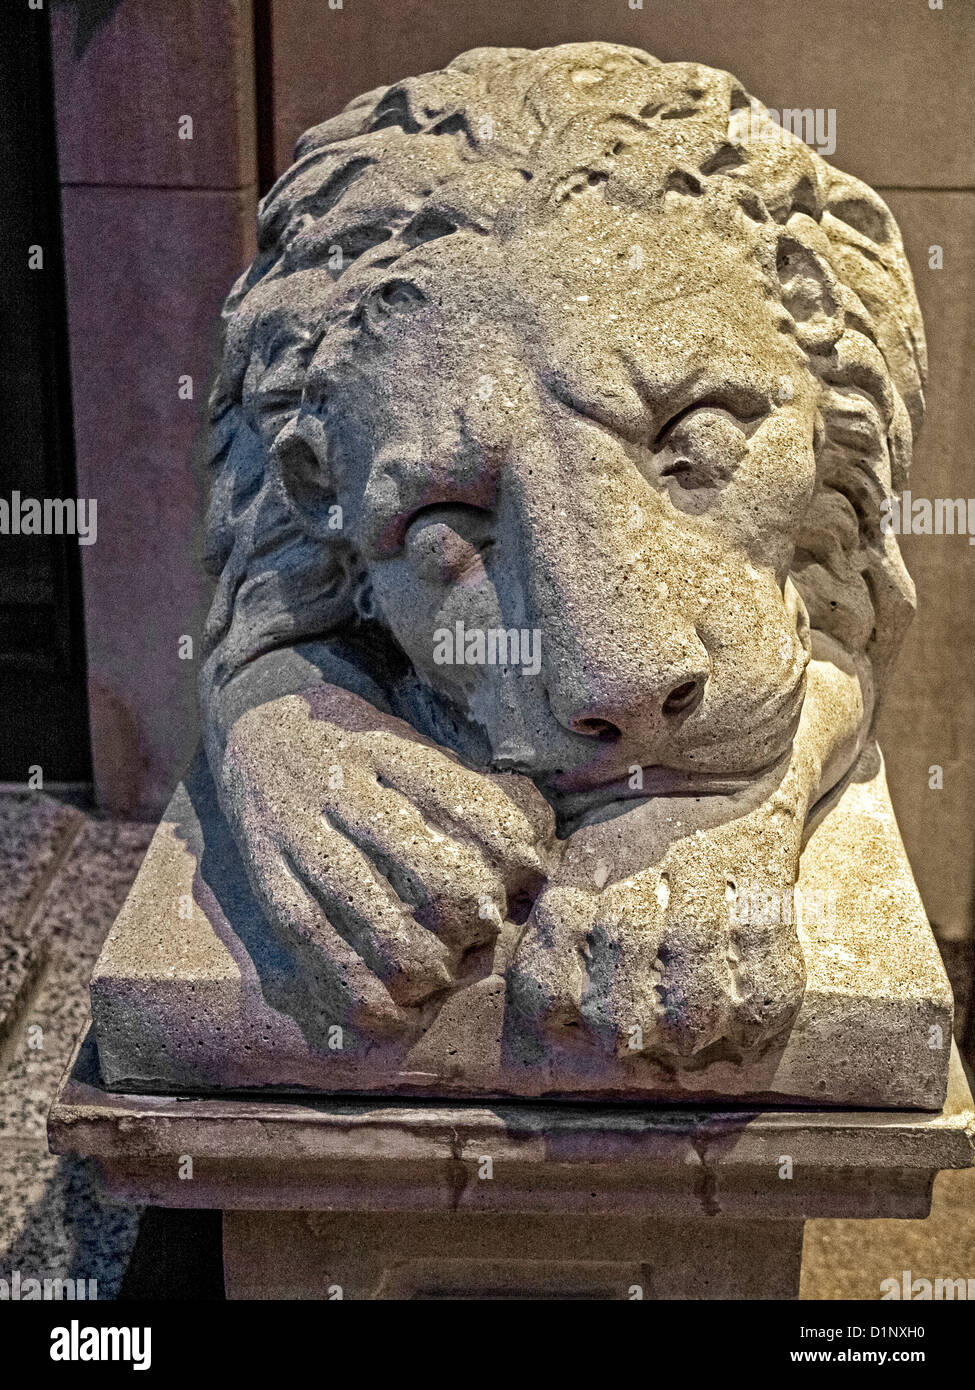 A bashful lion sculpture decorates the Regency Hotel entrance in New York City. - Stock Image